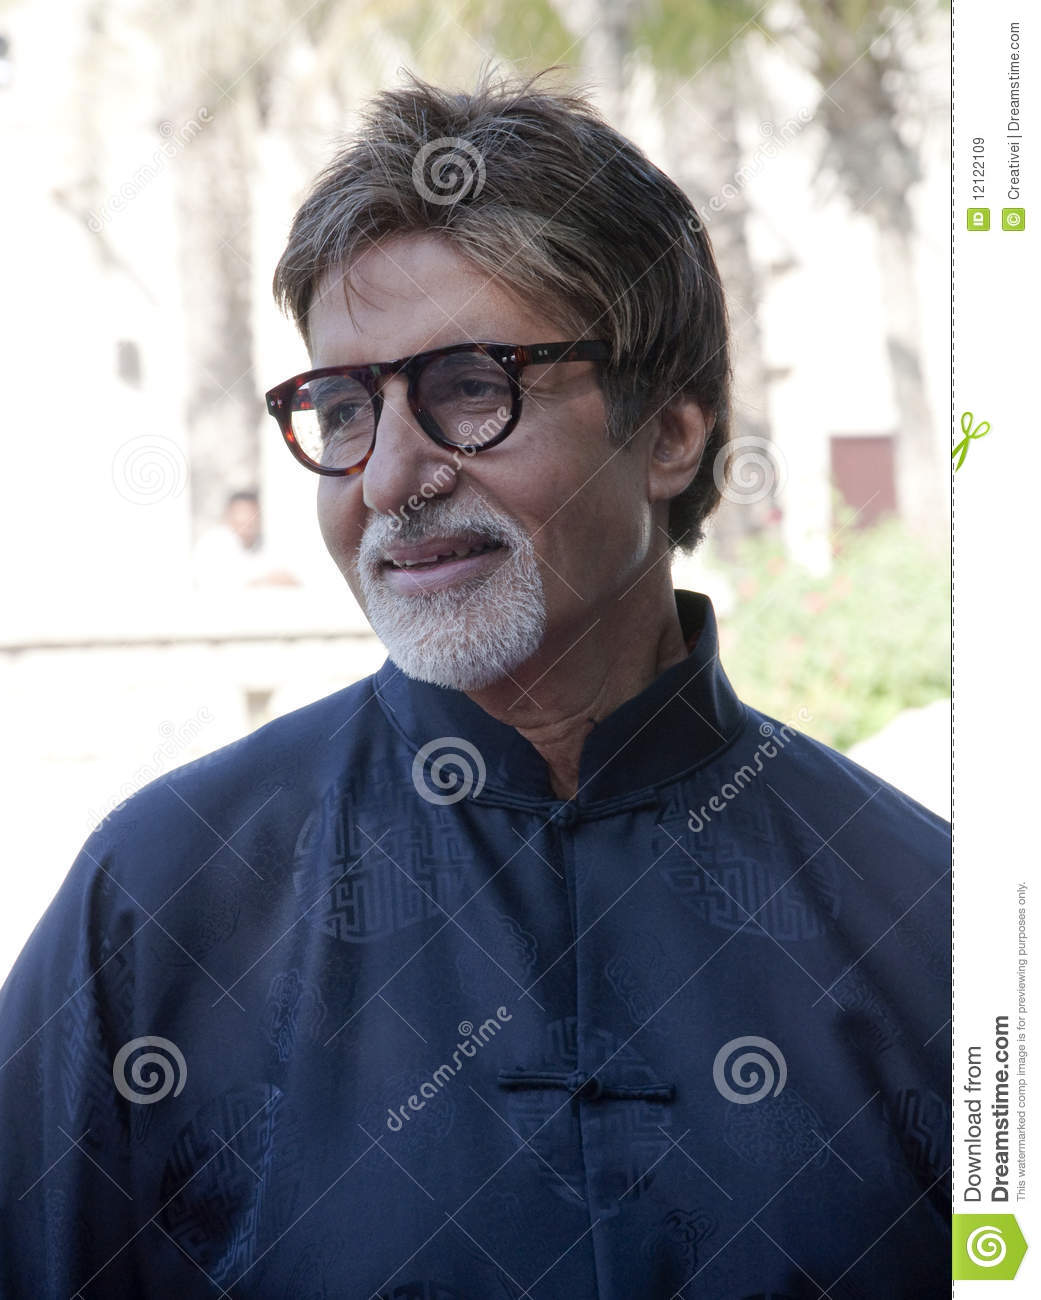 big b full movie download